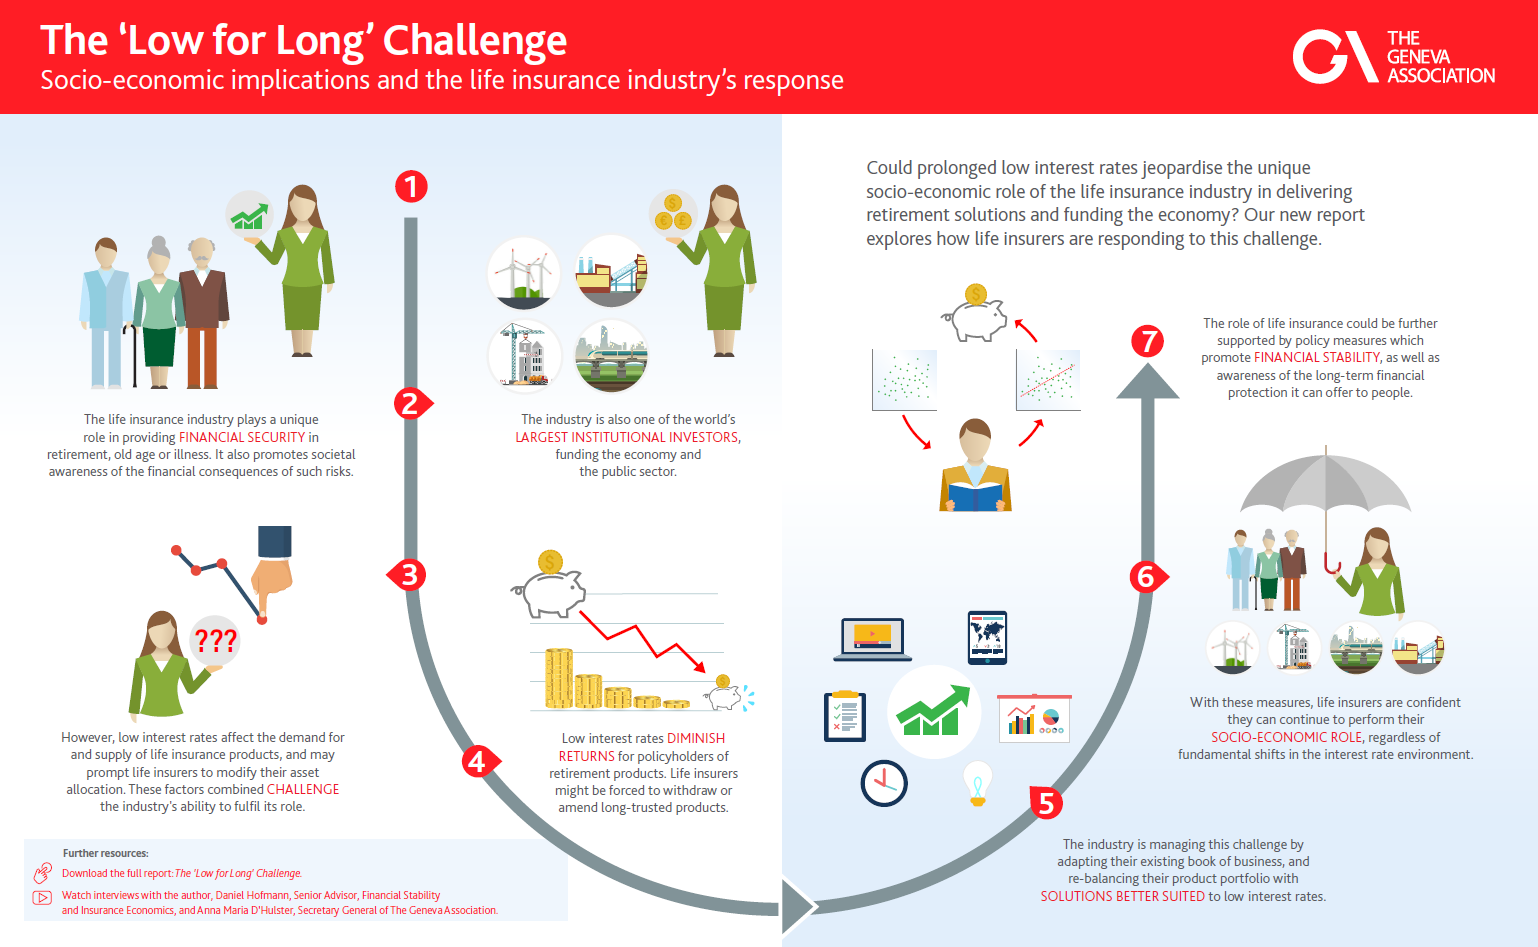 The 'Low for Long' Challenge infographic image